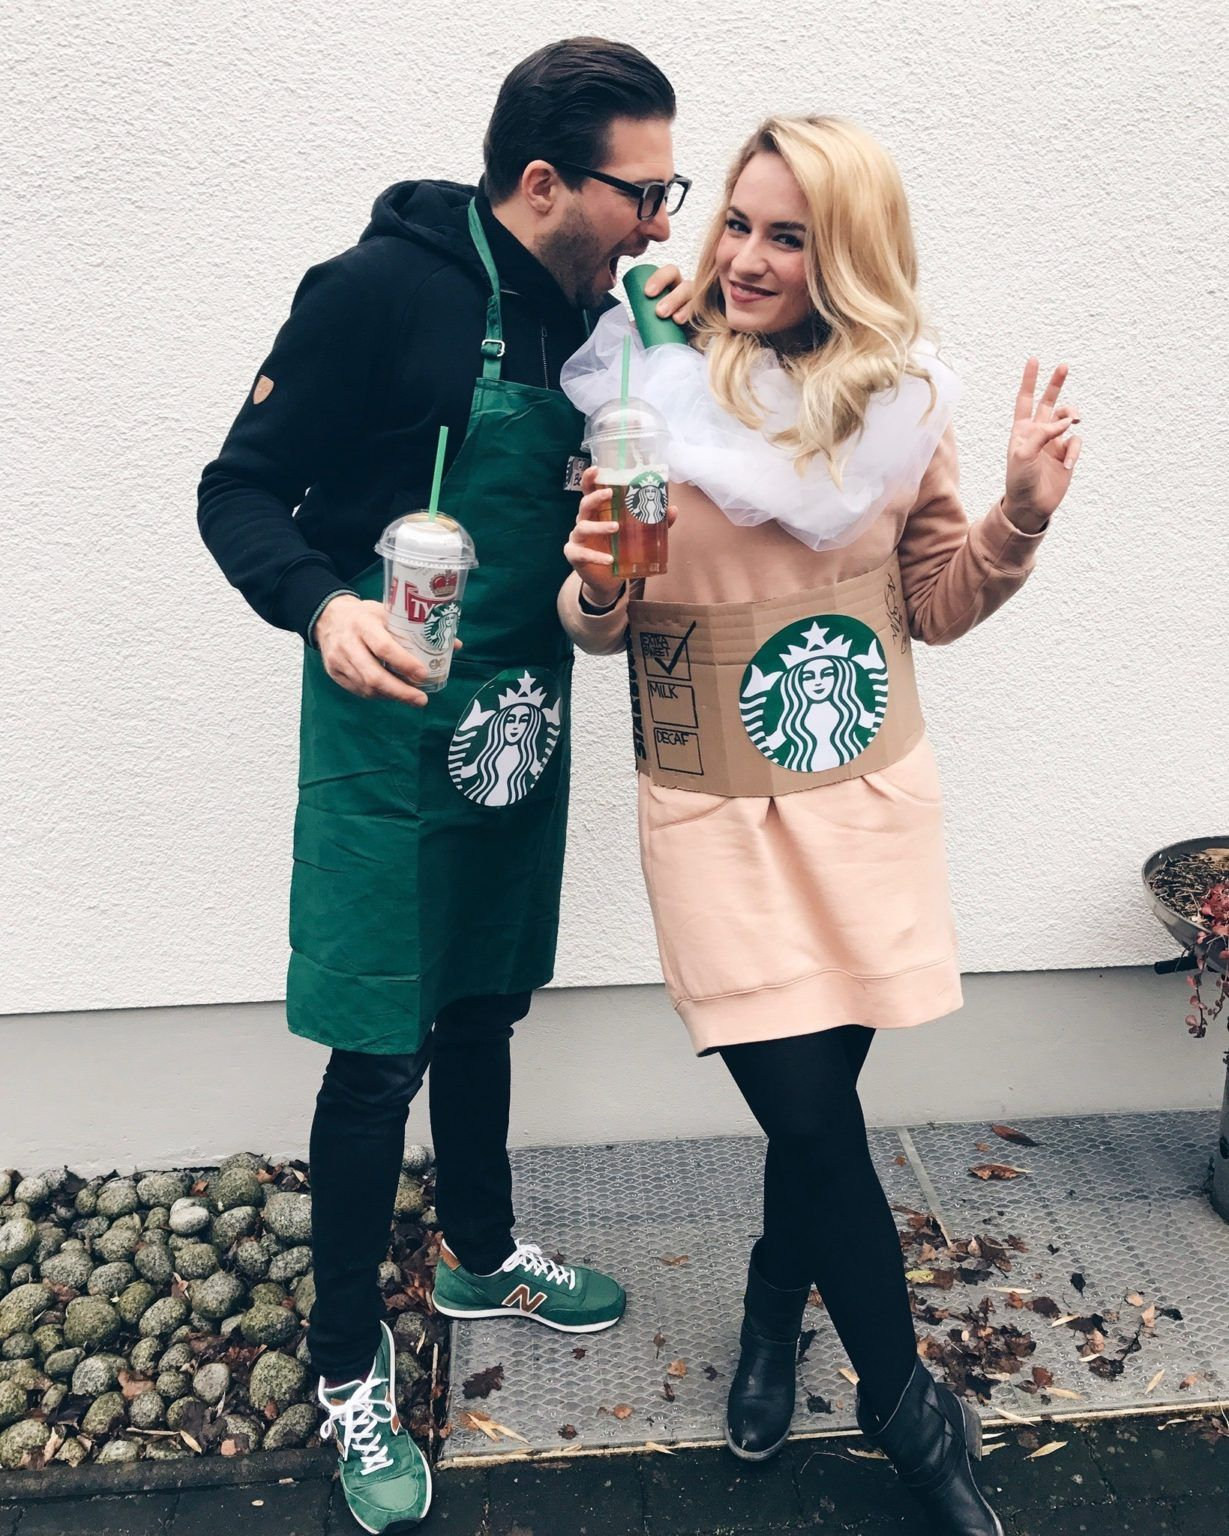 Lifestyle: Karneval 2017 - Starbucks Couple Costume #lattemacchiato